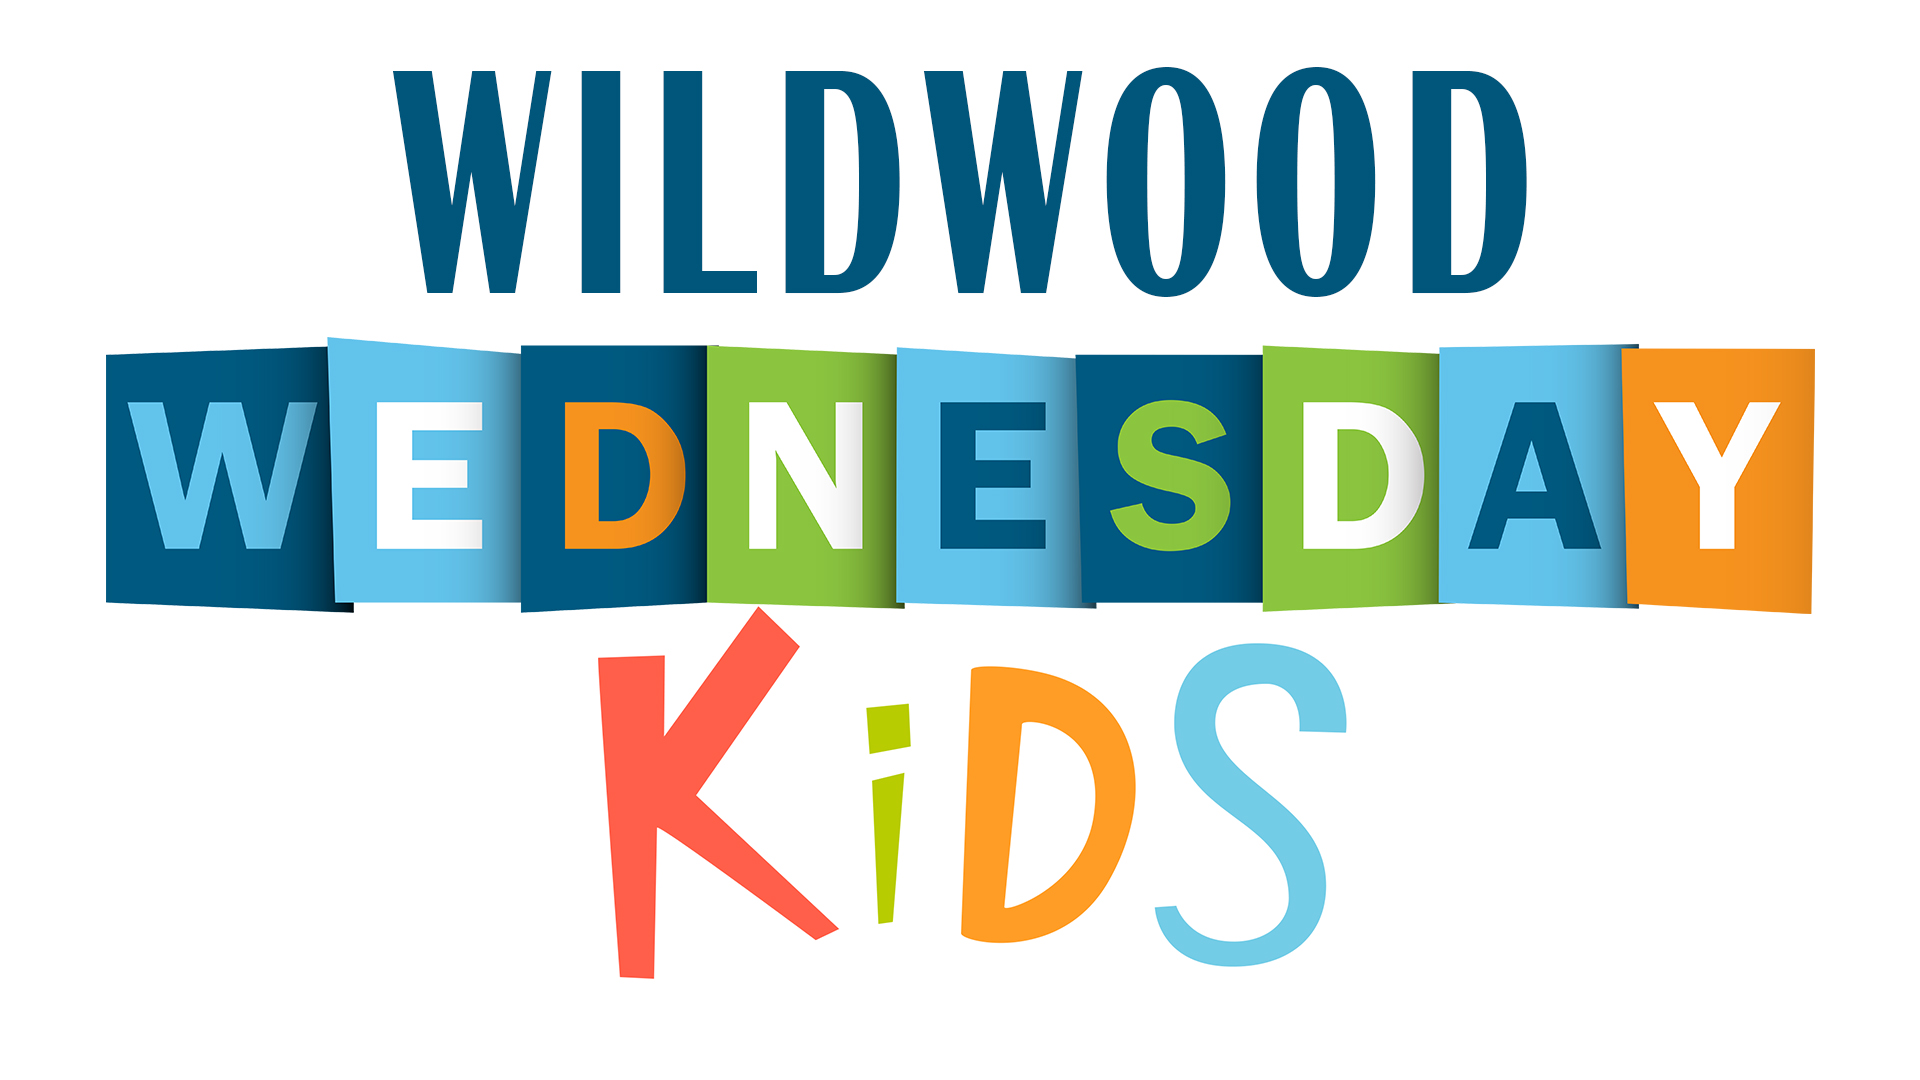 Wildwood wednesday kids logo